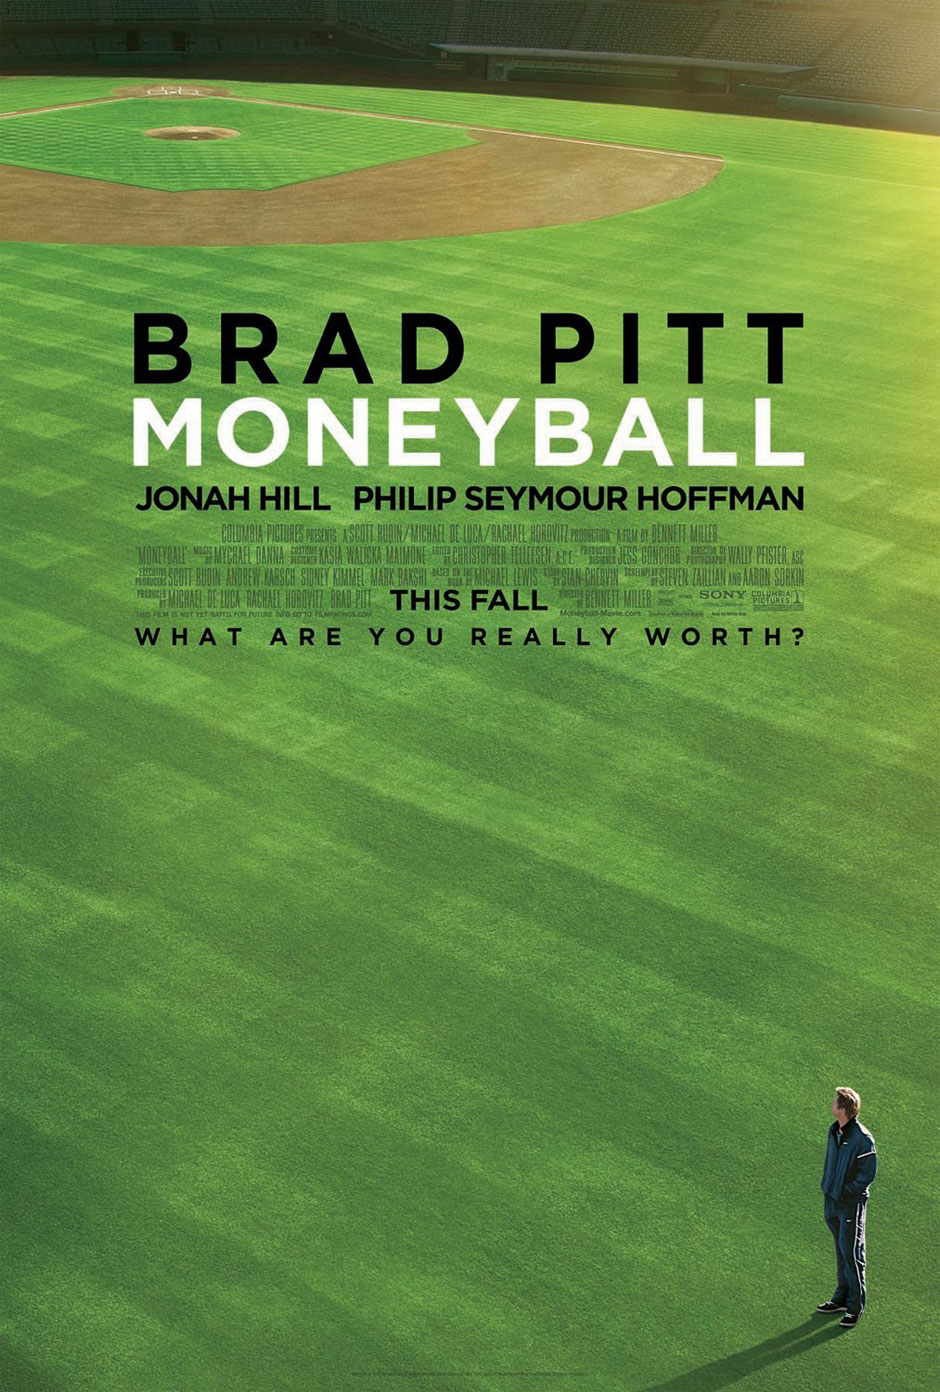 فيلم Moneyball 2011 BDRip مترجم